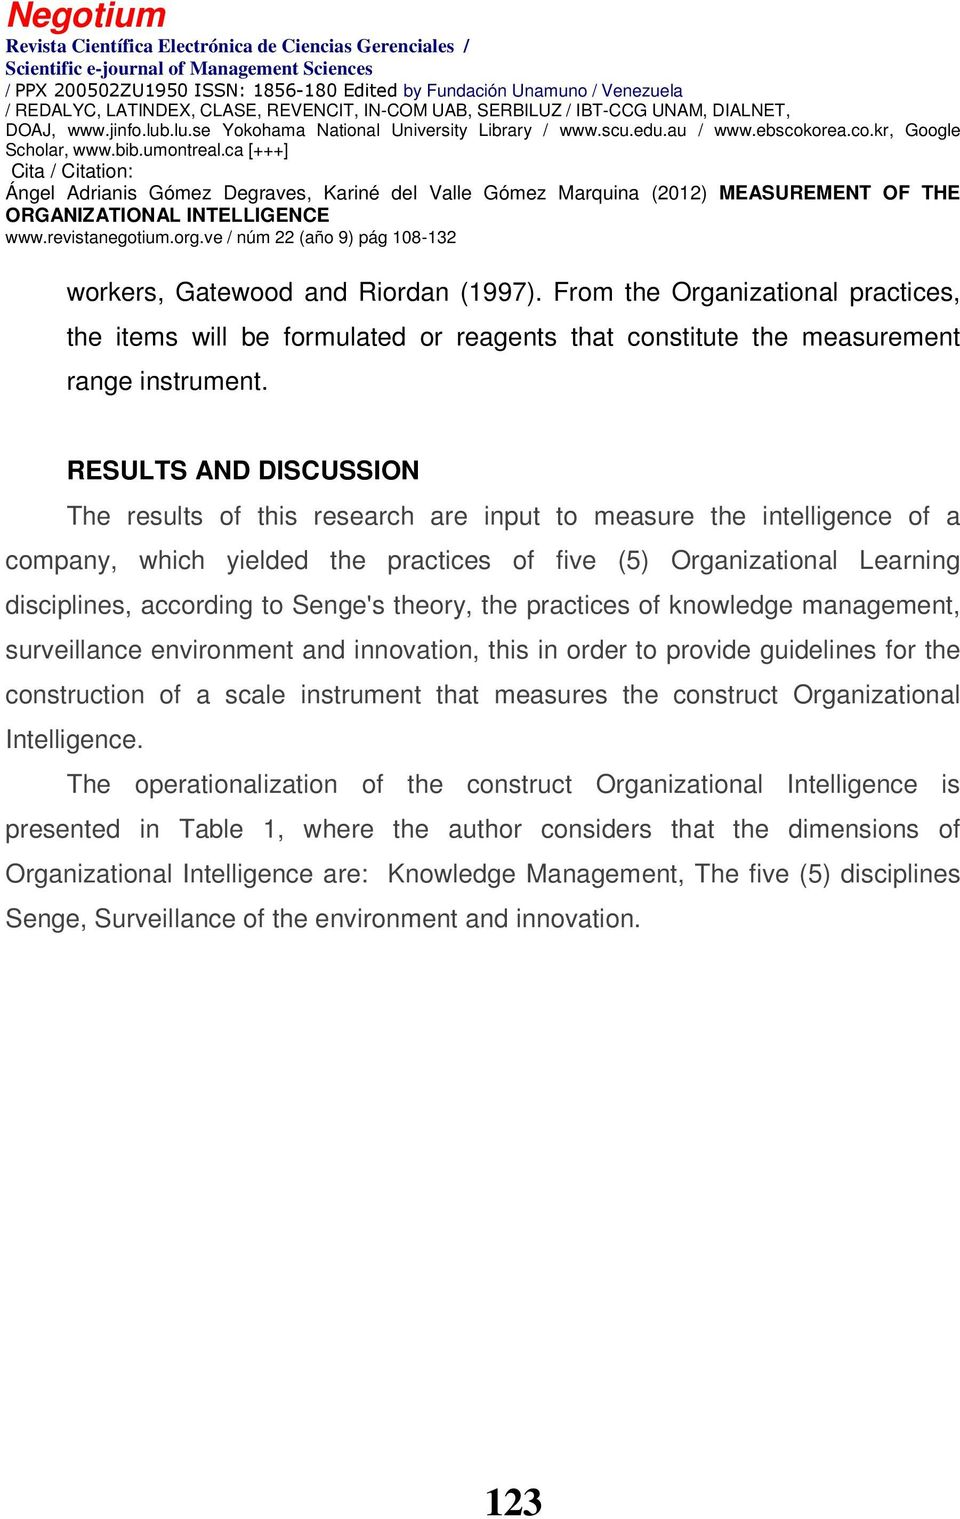 Senge's theory, the practices of knowledge management, surveillance environment and innovation, this in order to provide guidelines for the construction of a scale instrument that measures the